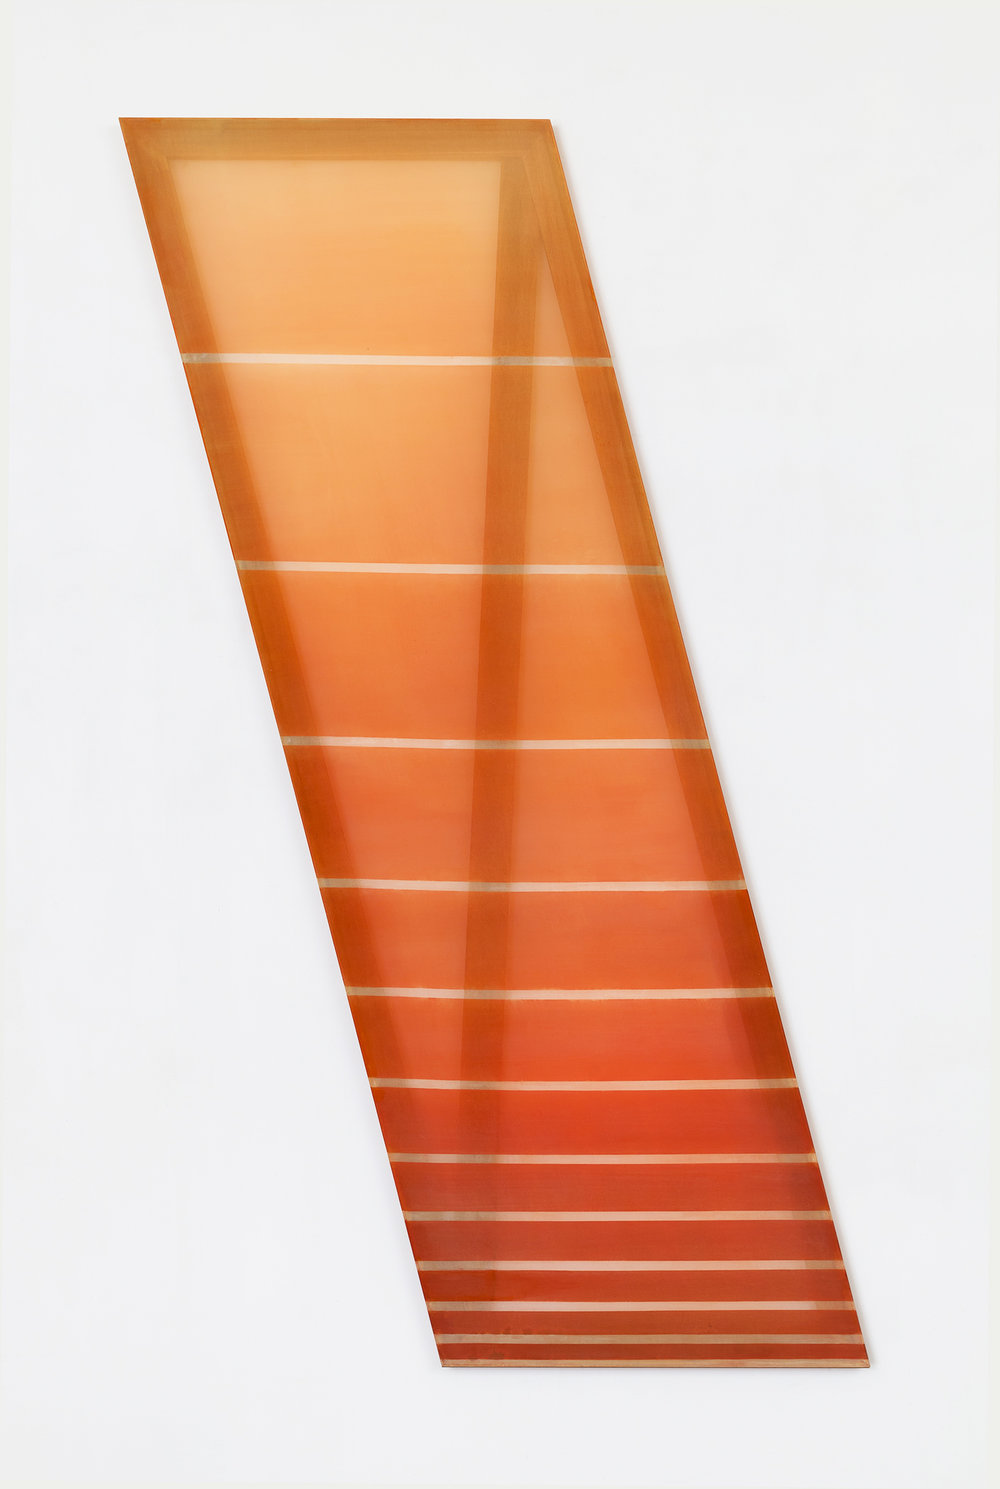 \  (sunset)  2015 acrylic, and dye on silk 80 in x 20 in